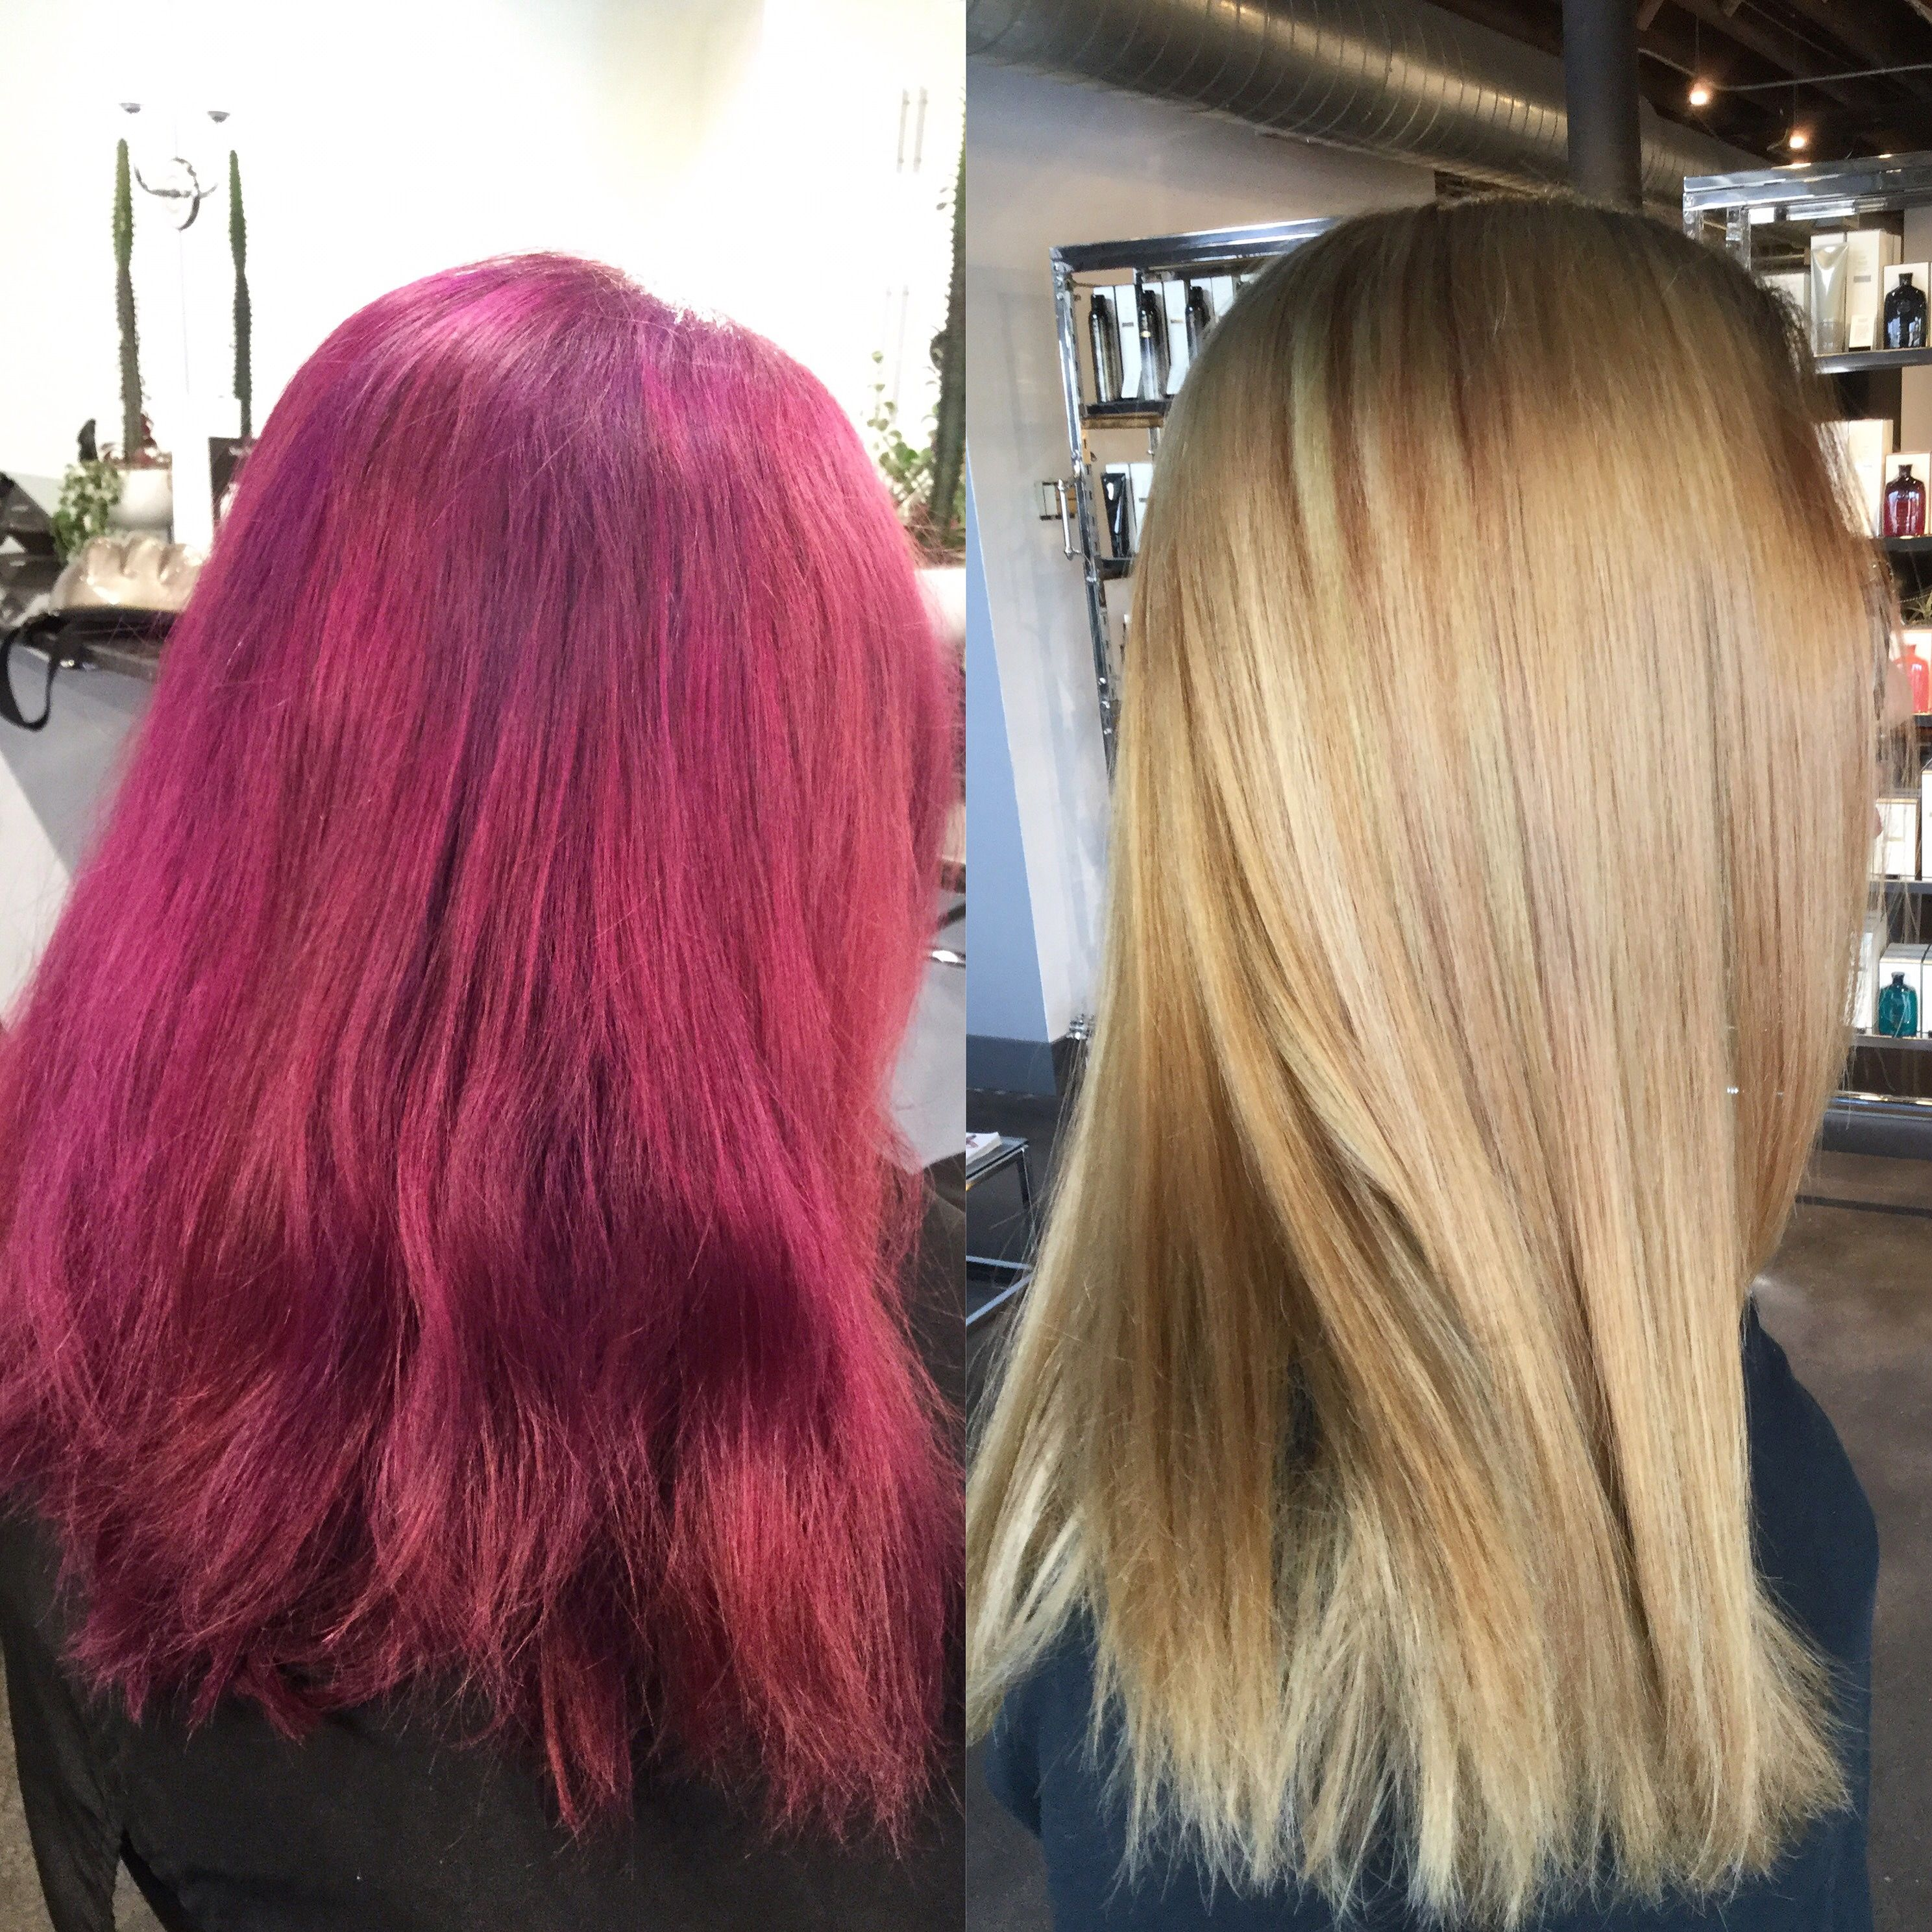 Big Hair Transformation Faded Purple To Honey Blonde Before And After Hair Color Transformation Blonde Hair Transformations Hair Transformation Hair